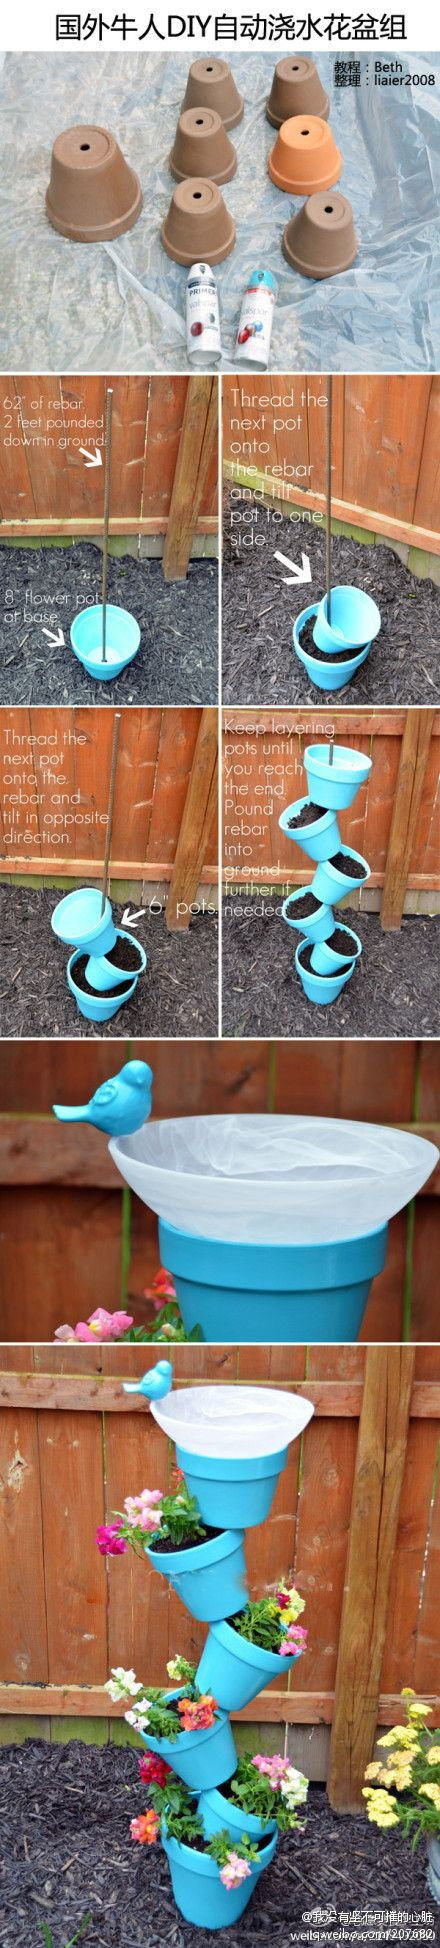 The foreign cattle diy automatic watering flowerpot group